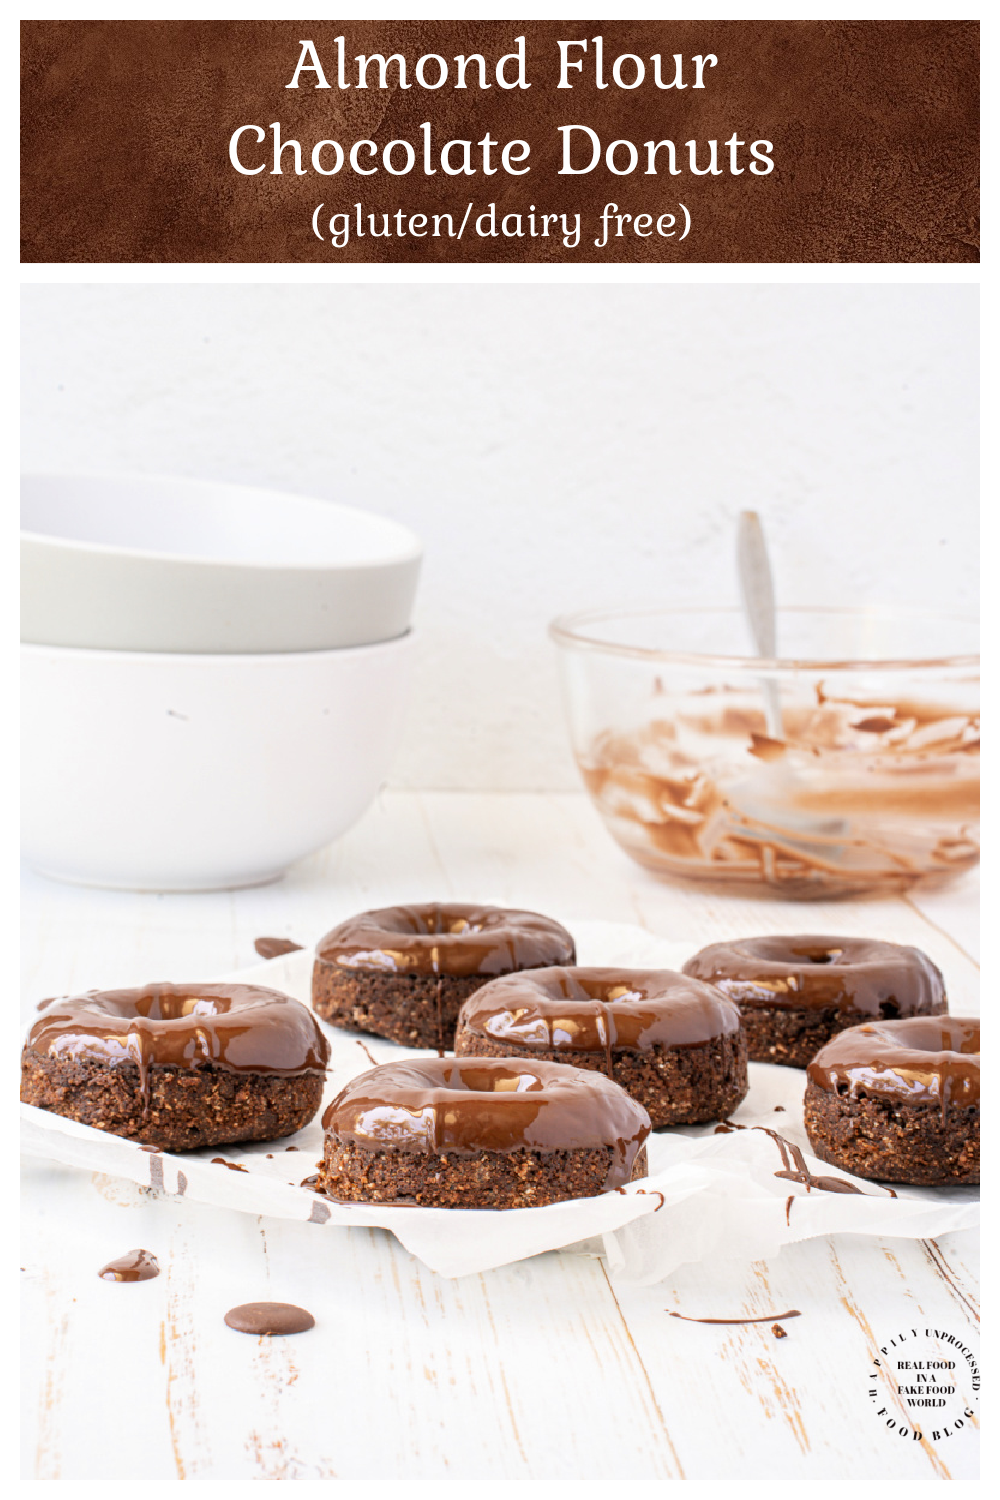 How to make healthy almond flour donuts with a chocolate glaze that are gluten free and dairy free - Almond Flour Chocolate Glazed Donuts